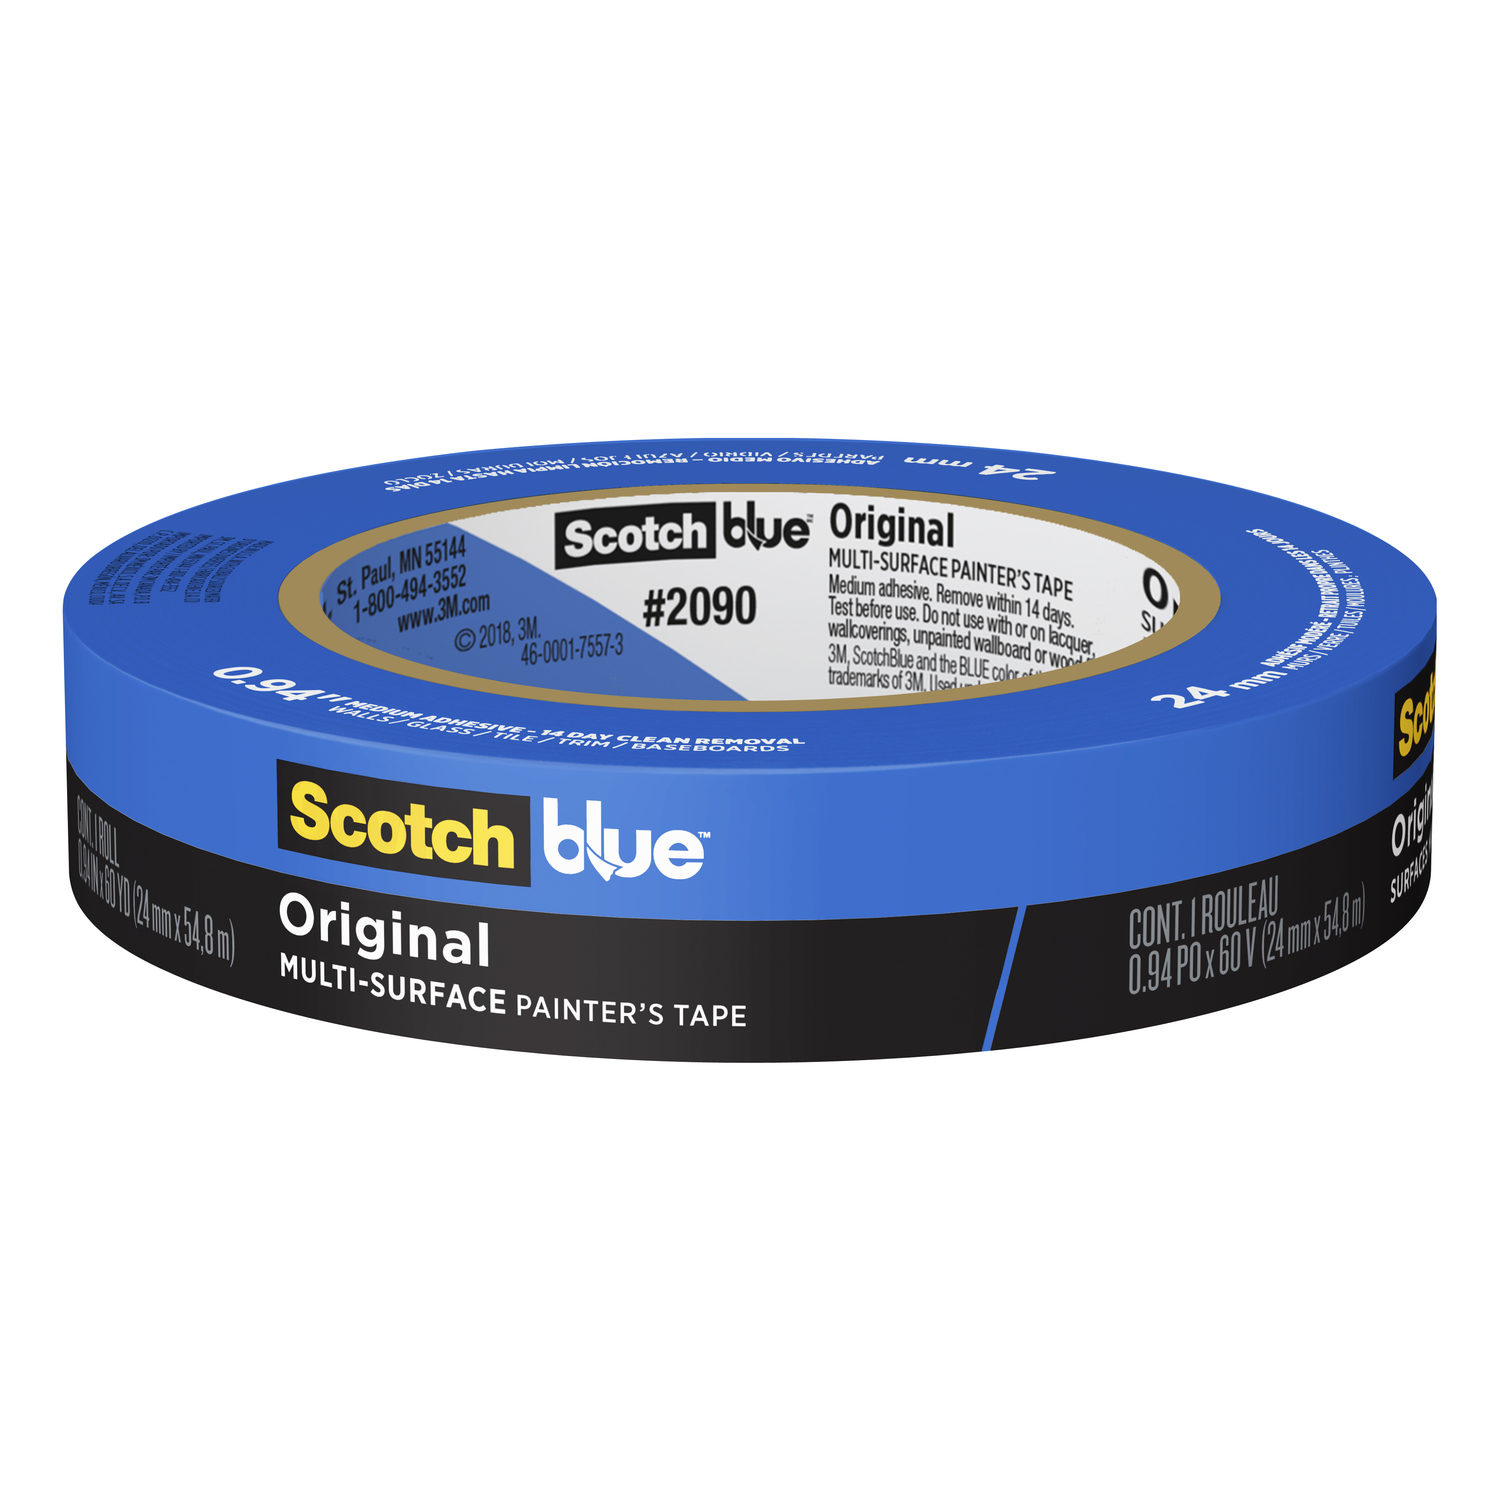 3M  Scotch Blue  0.94 in. W x 60 yd. L Medium Strength  Painter's Tape  1 pk Blue